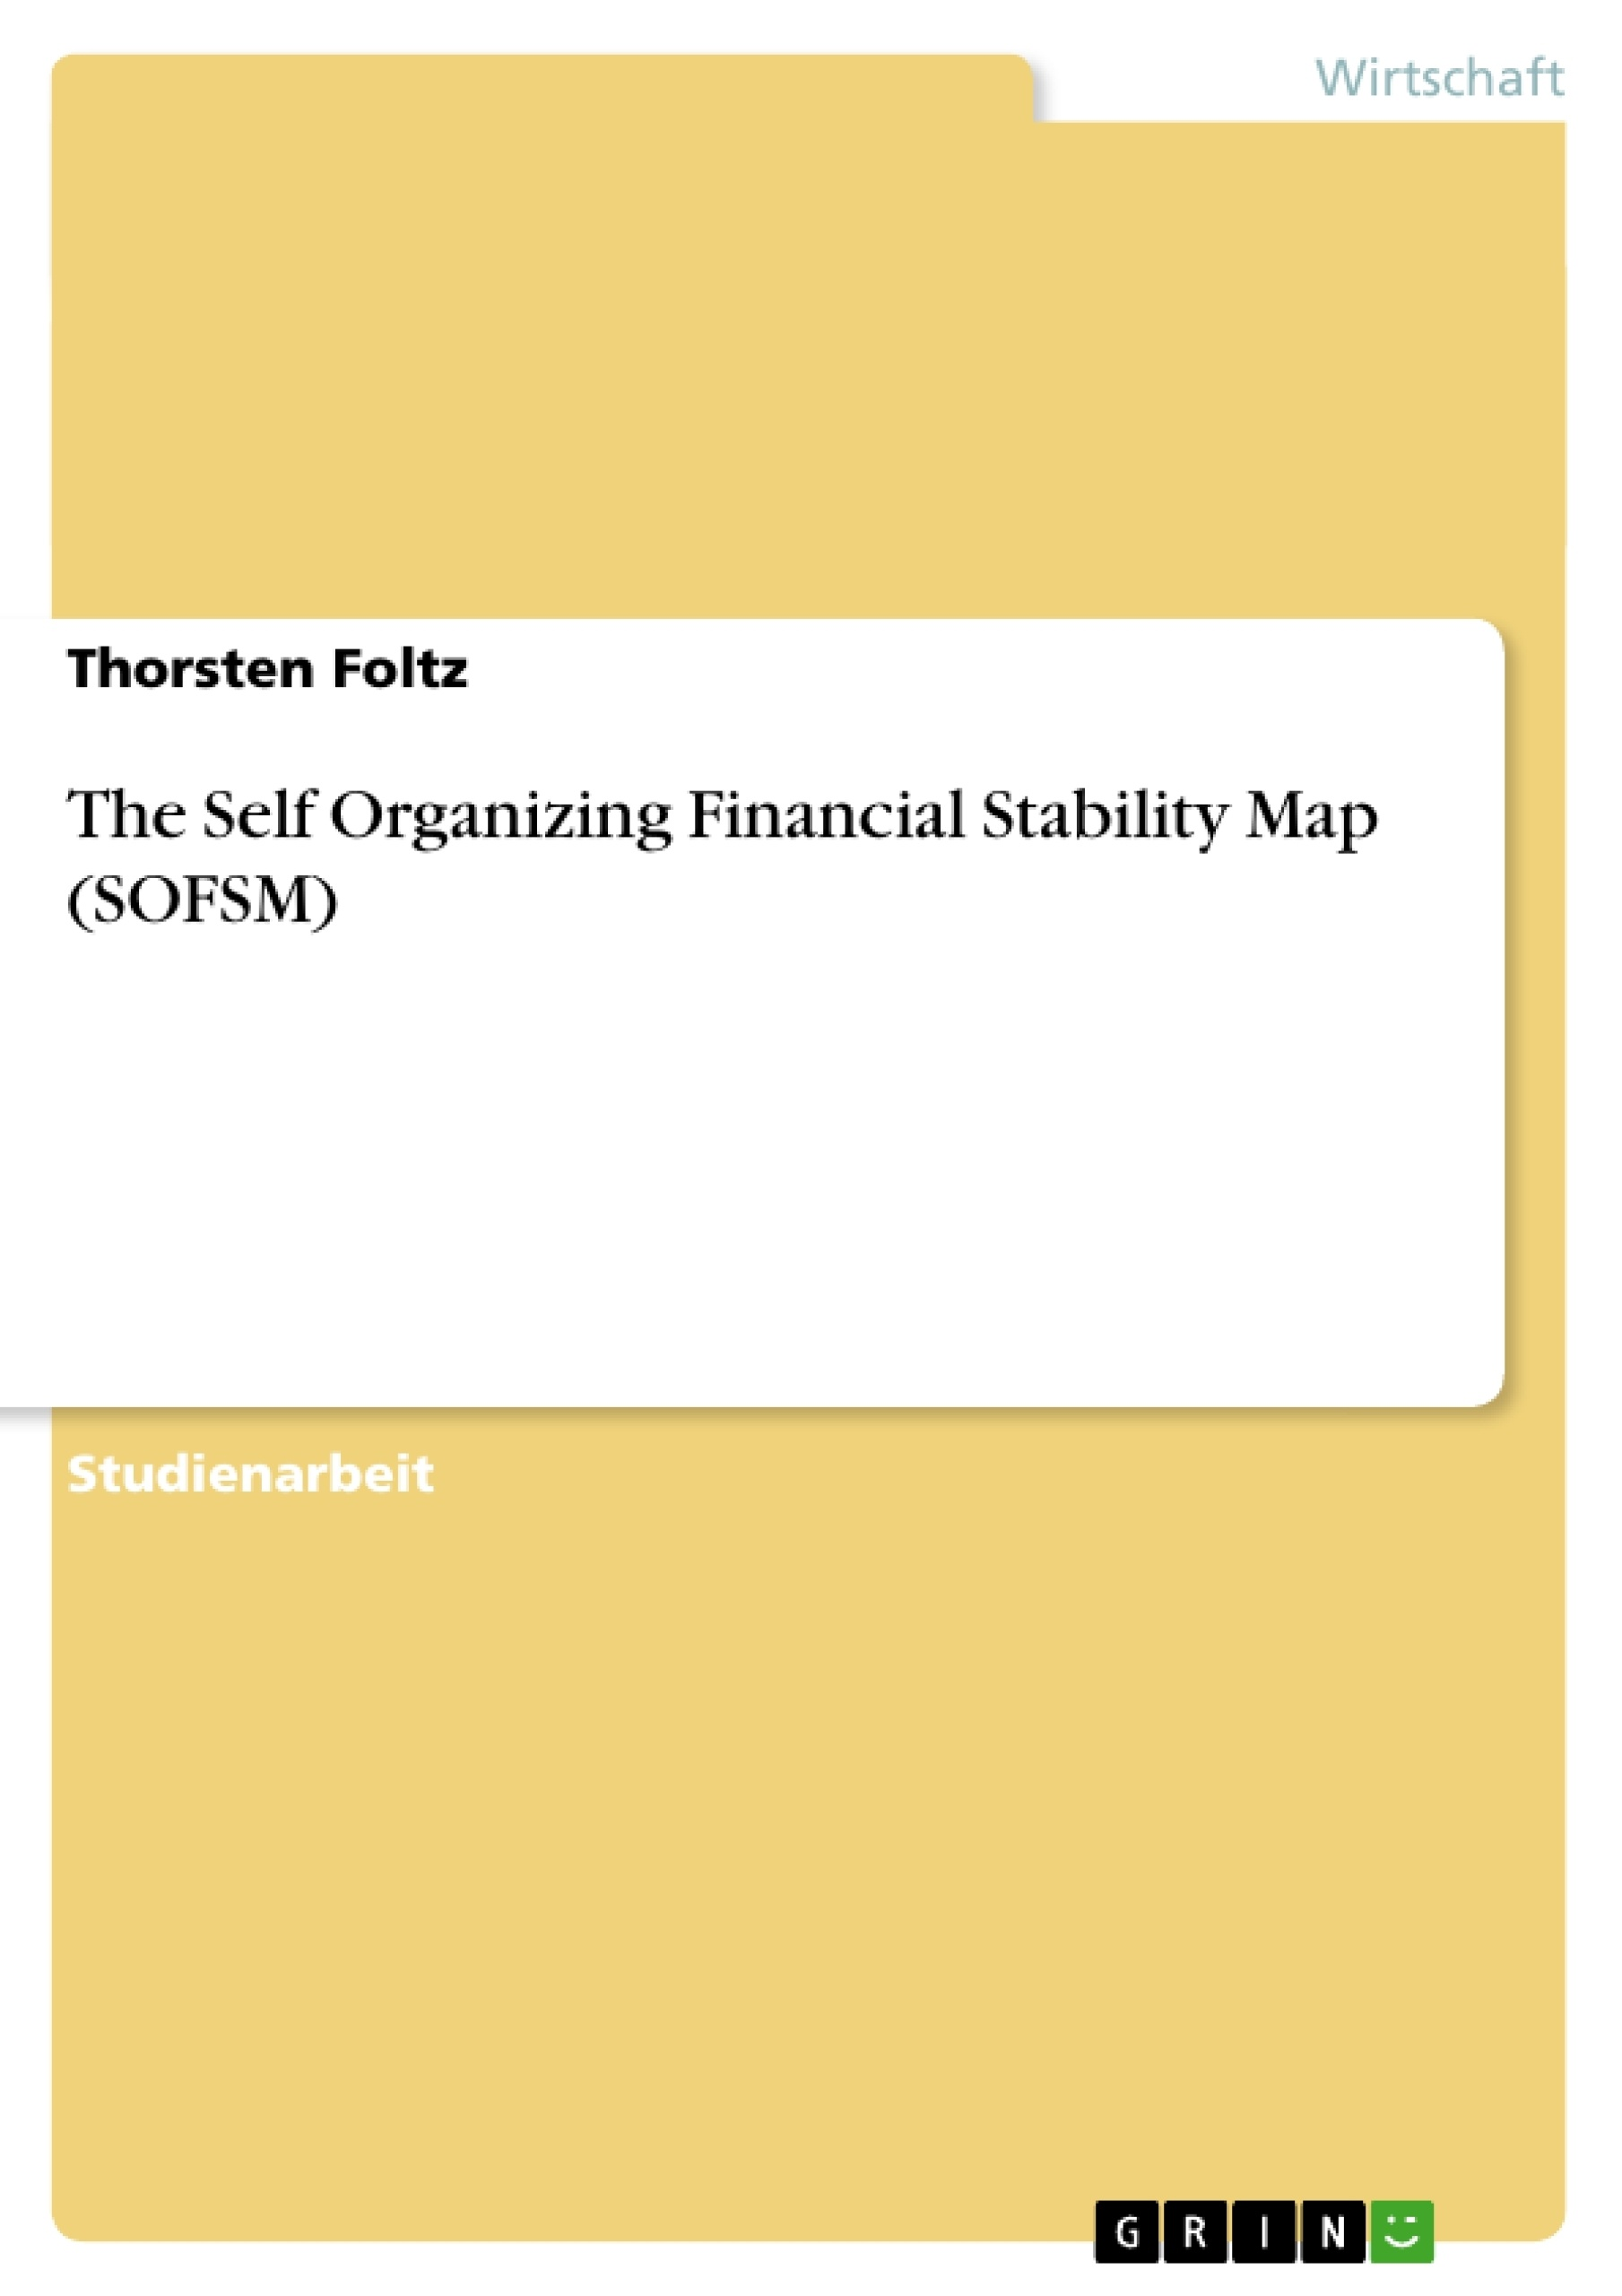 Titel: The Self Organizing Financial Stability Map (SOFSM)